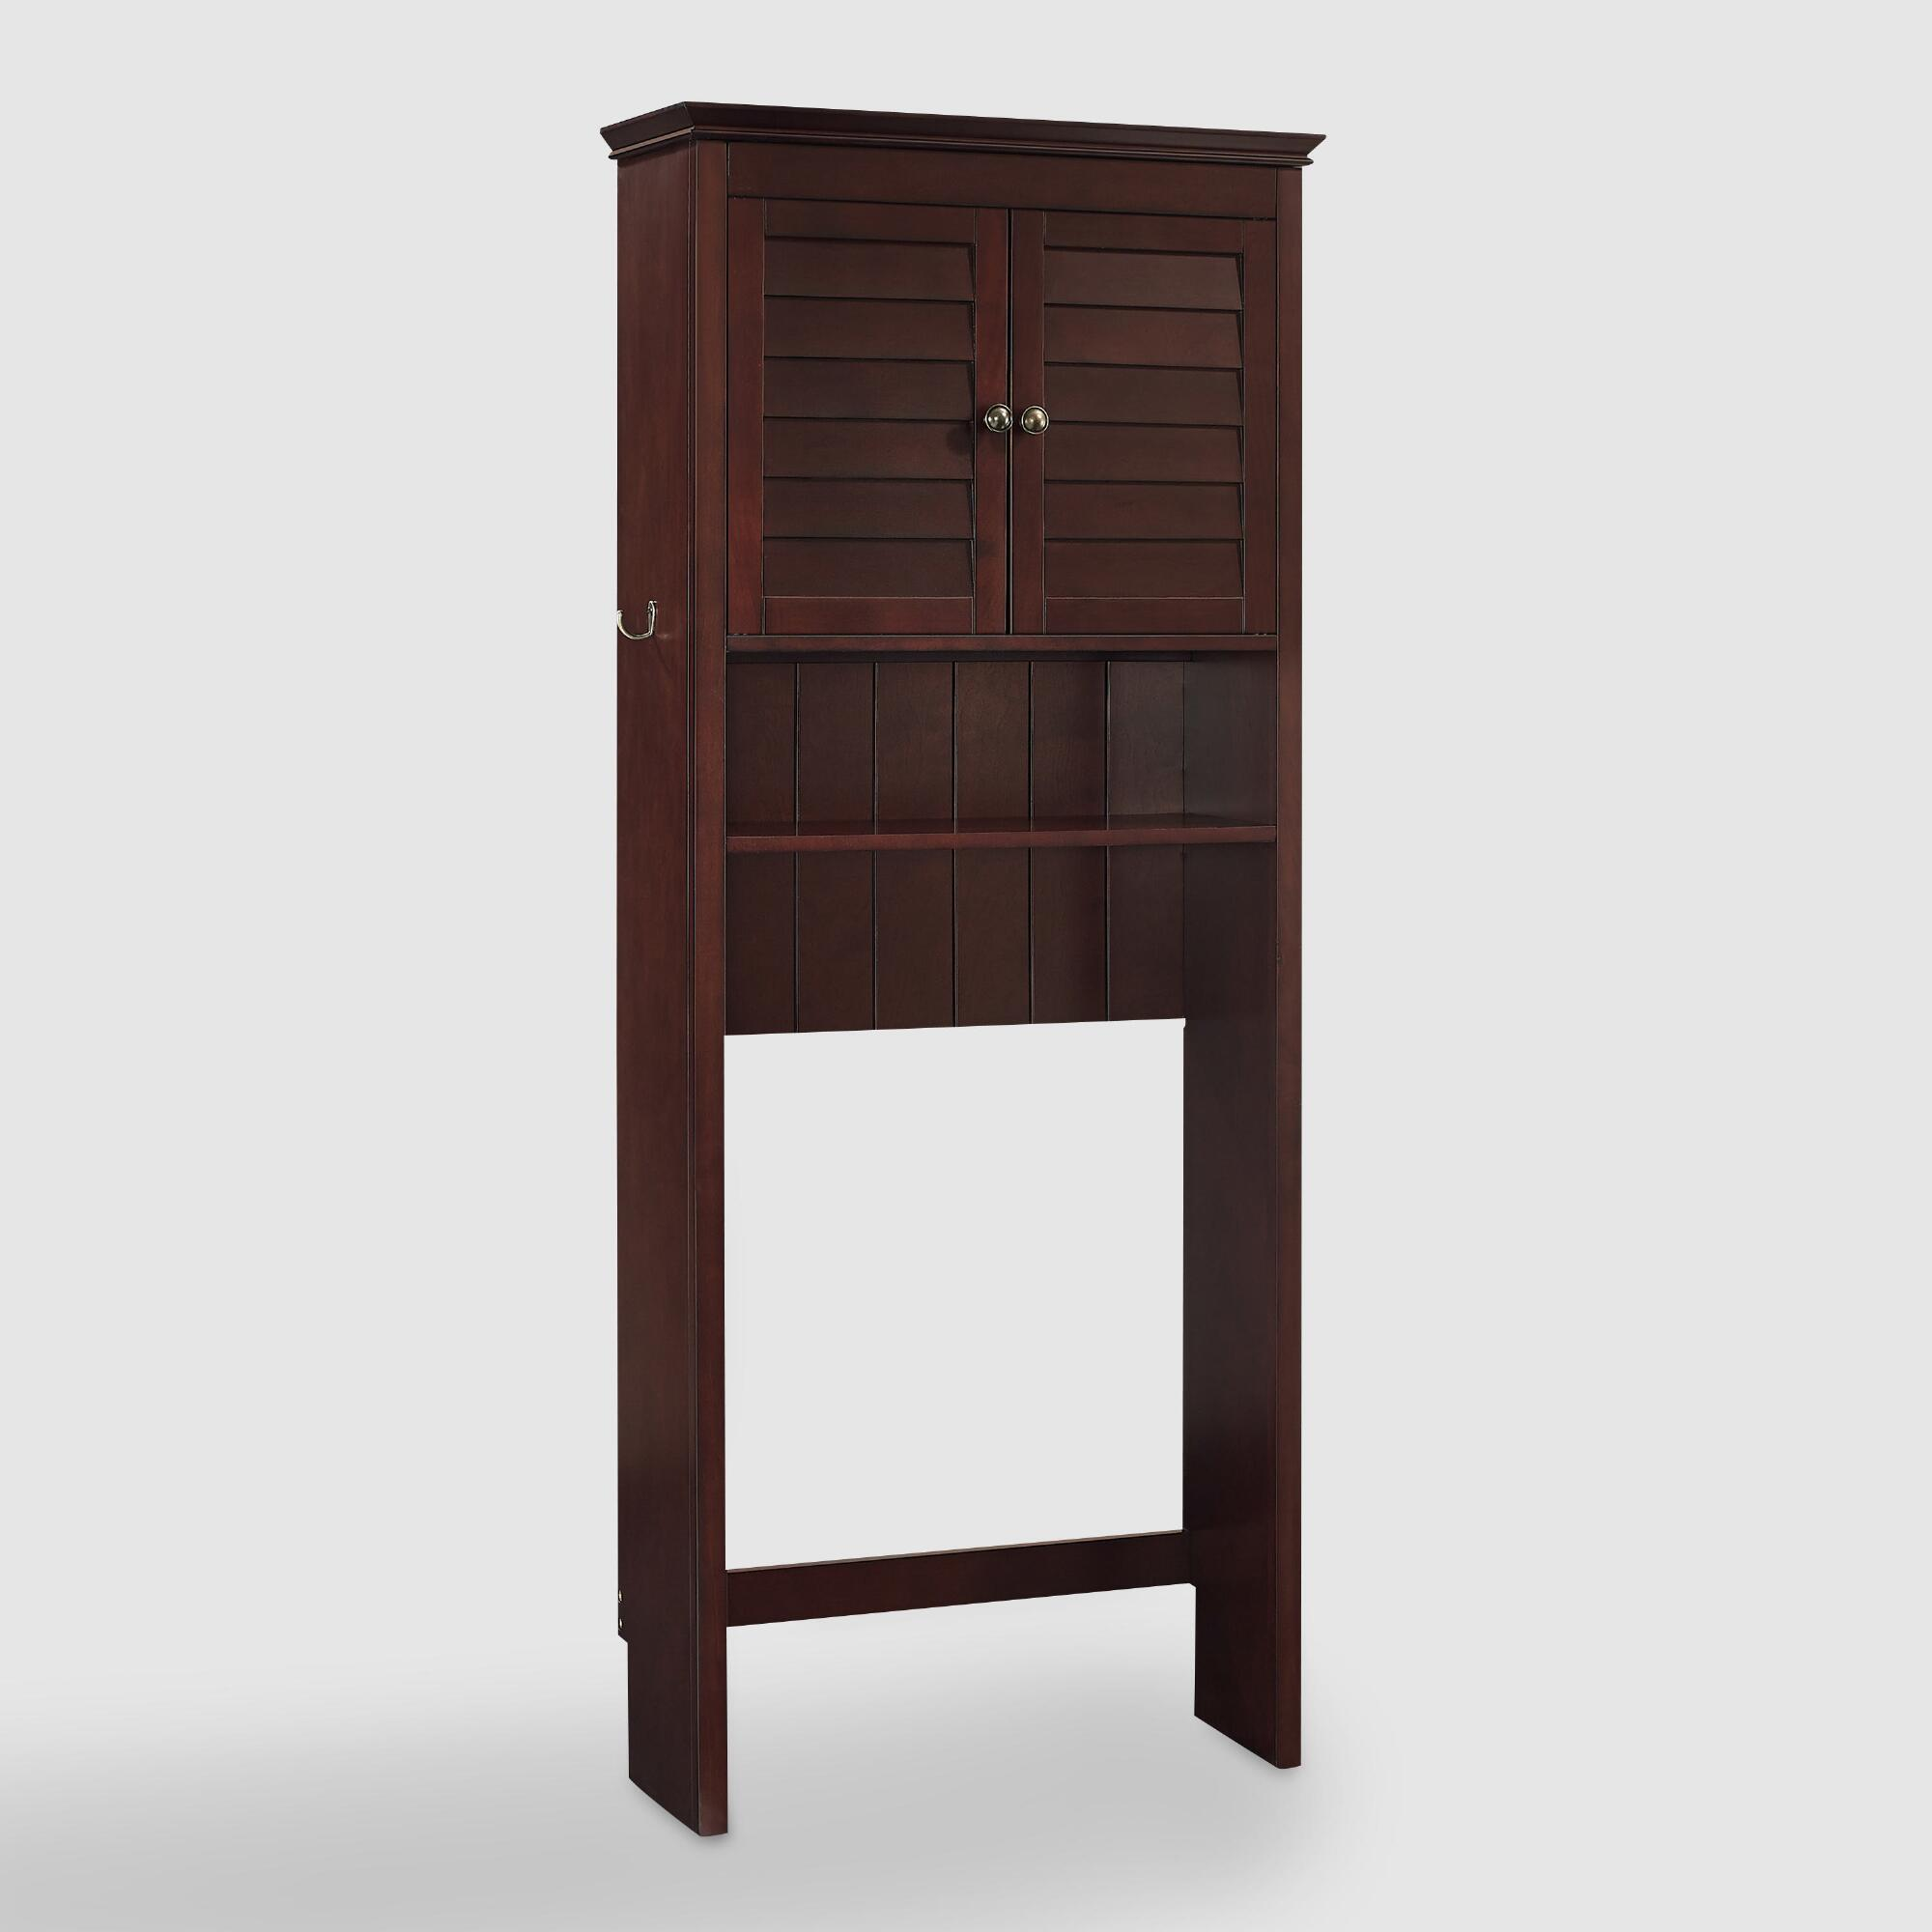 Espresso Wood Maryella Bathroom Space Saver Cabinet World Market